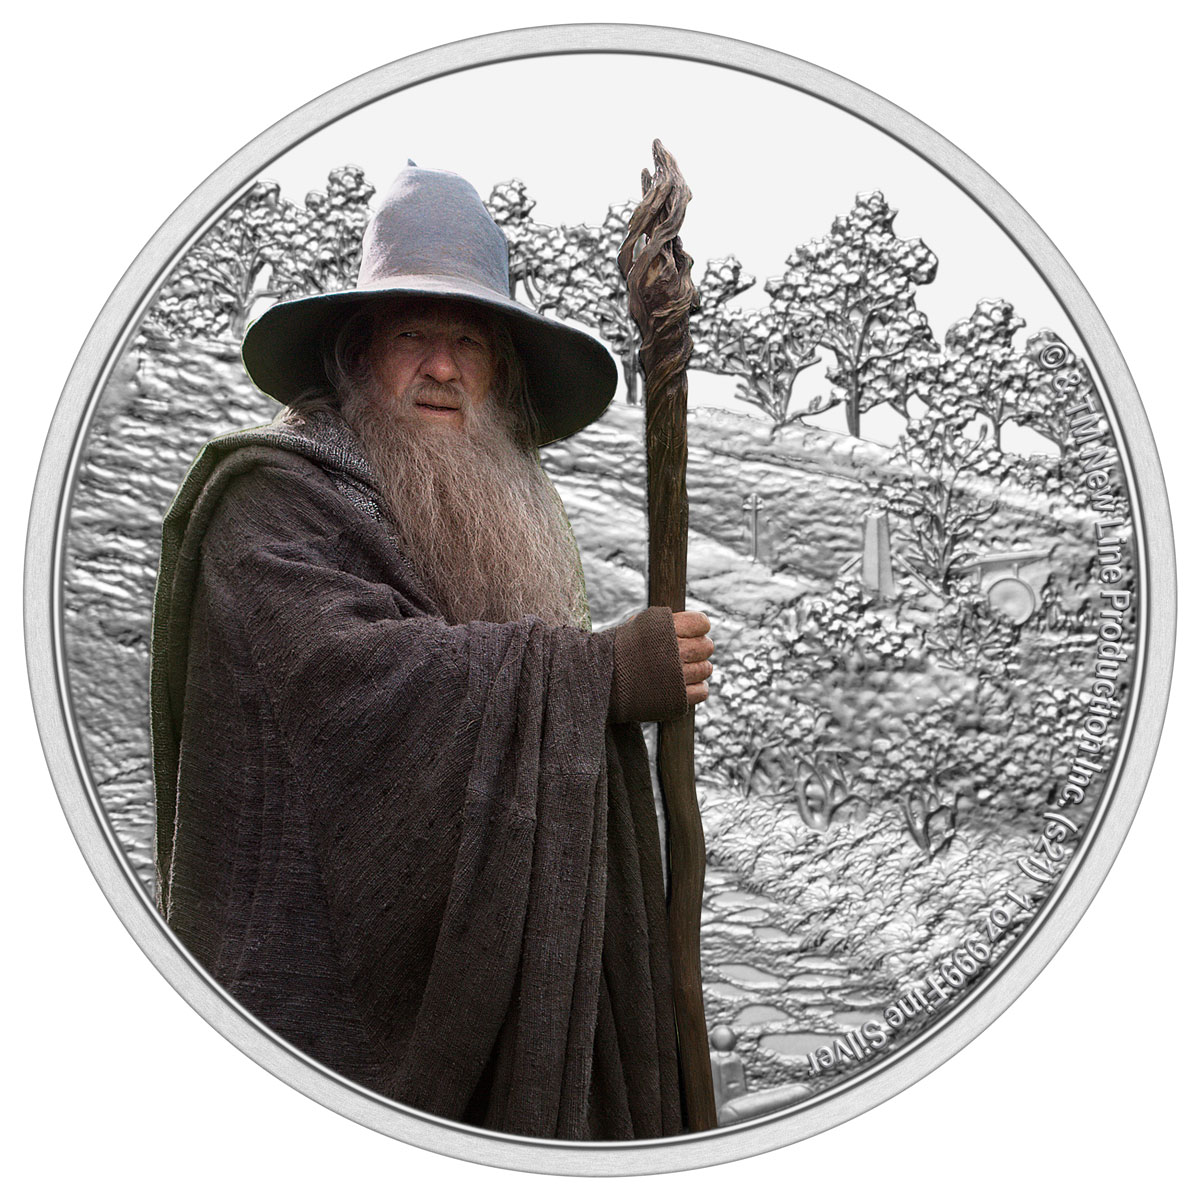 2021 Niue Lord of the Rings - Gandalf 1 oz Silver Colorized Proof $2 Coin GEM Proof